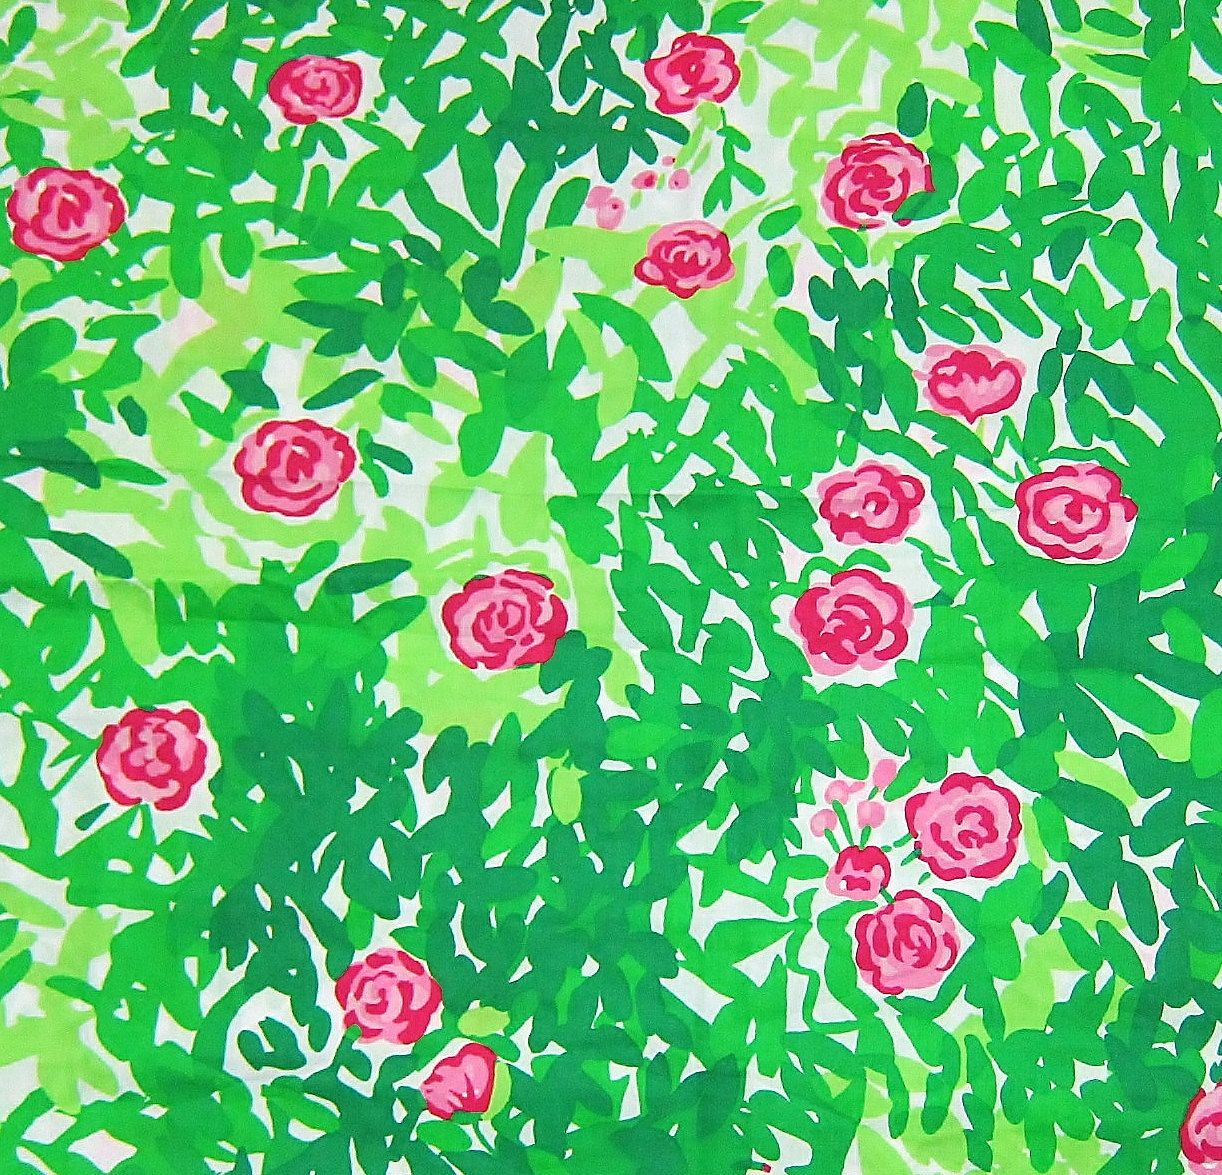 Lilly Pulitzer Fabric Authentic New Lilly Pulitzer Fabric Pink Green Multi Dashing 1